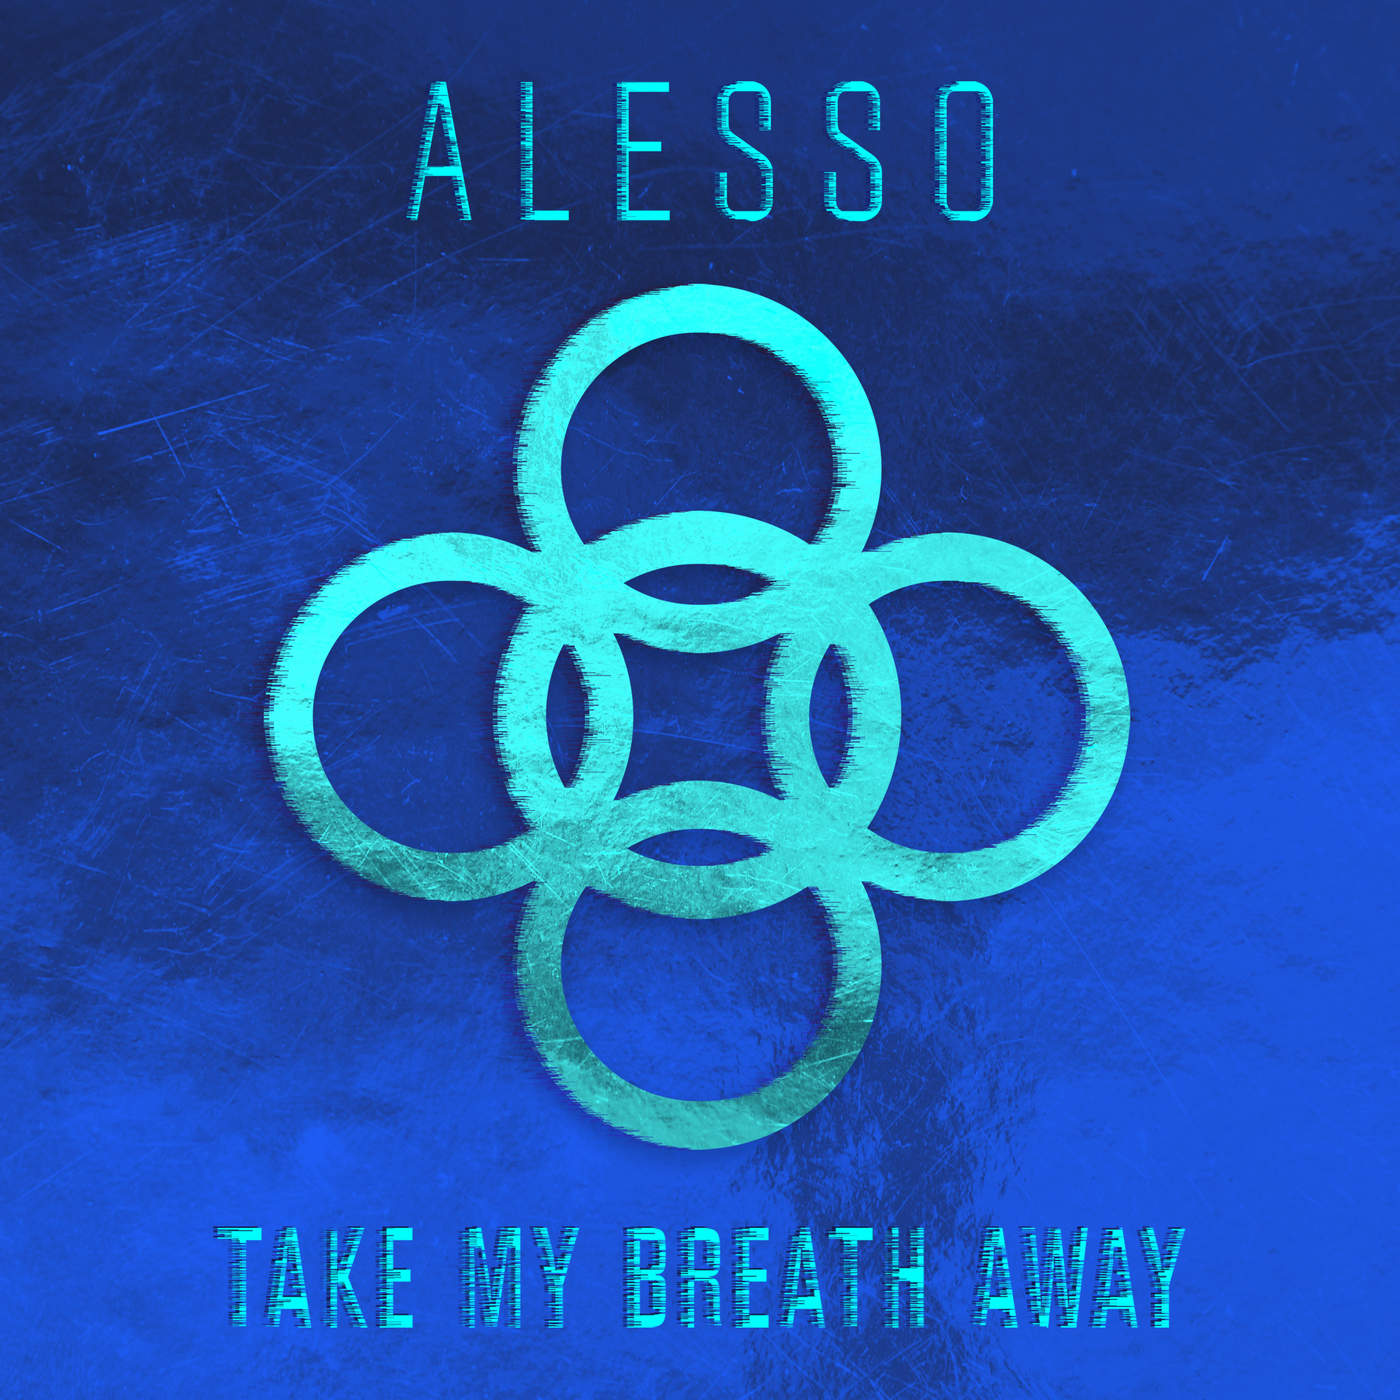 Alesso - Take My Breath Away - Single Cover